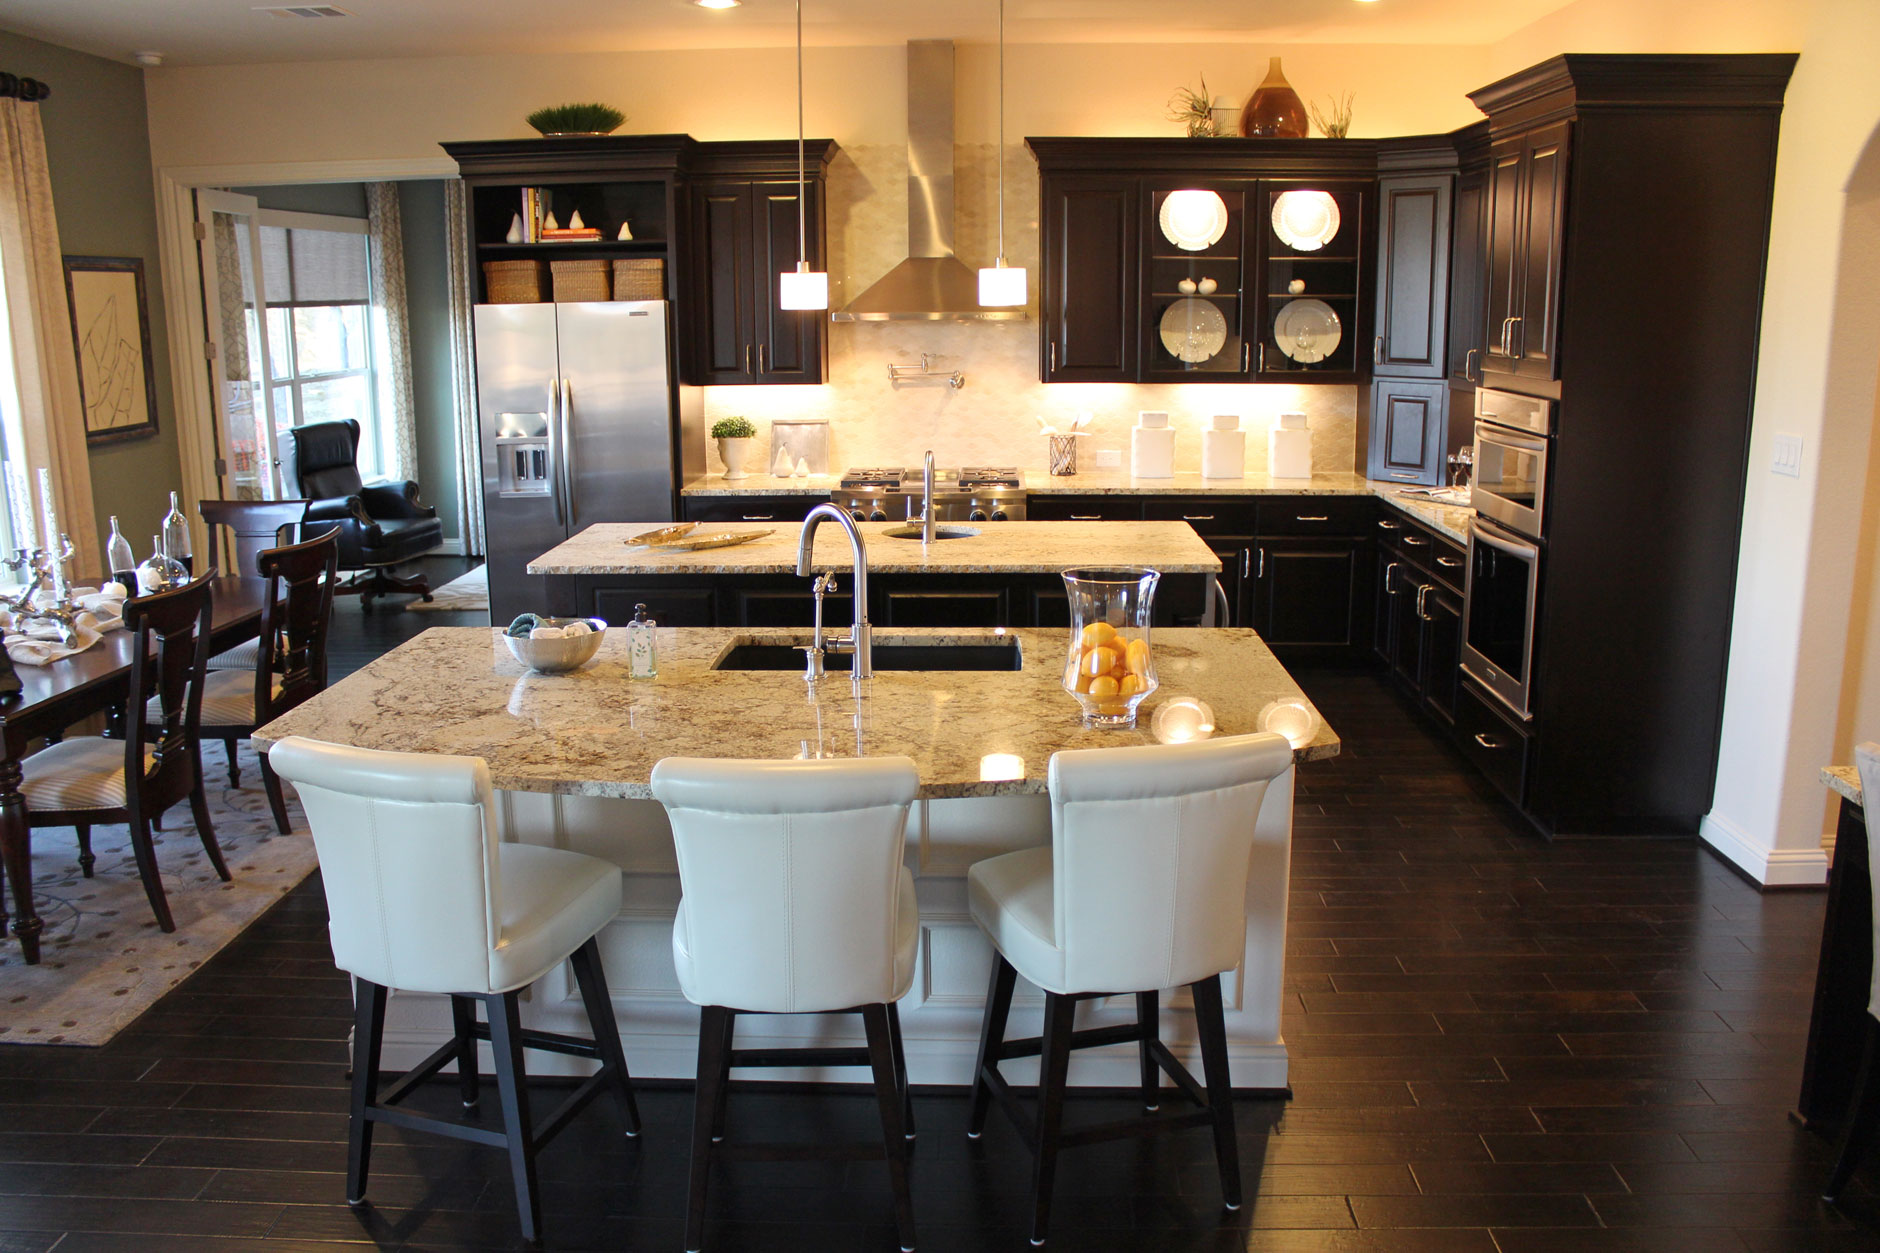 Kitchen cabinet 5 by Burrows Cabinets in Espresso with double island